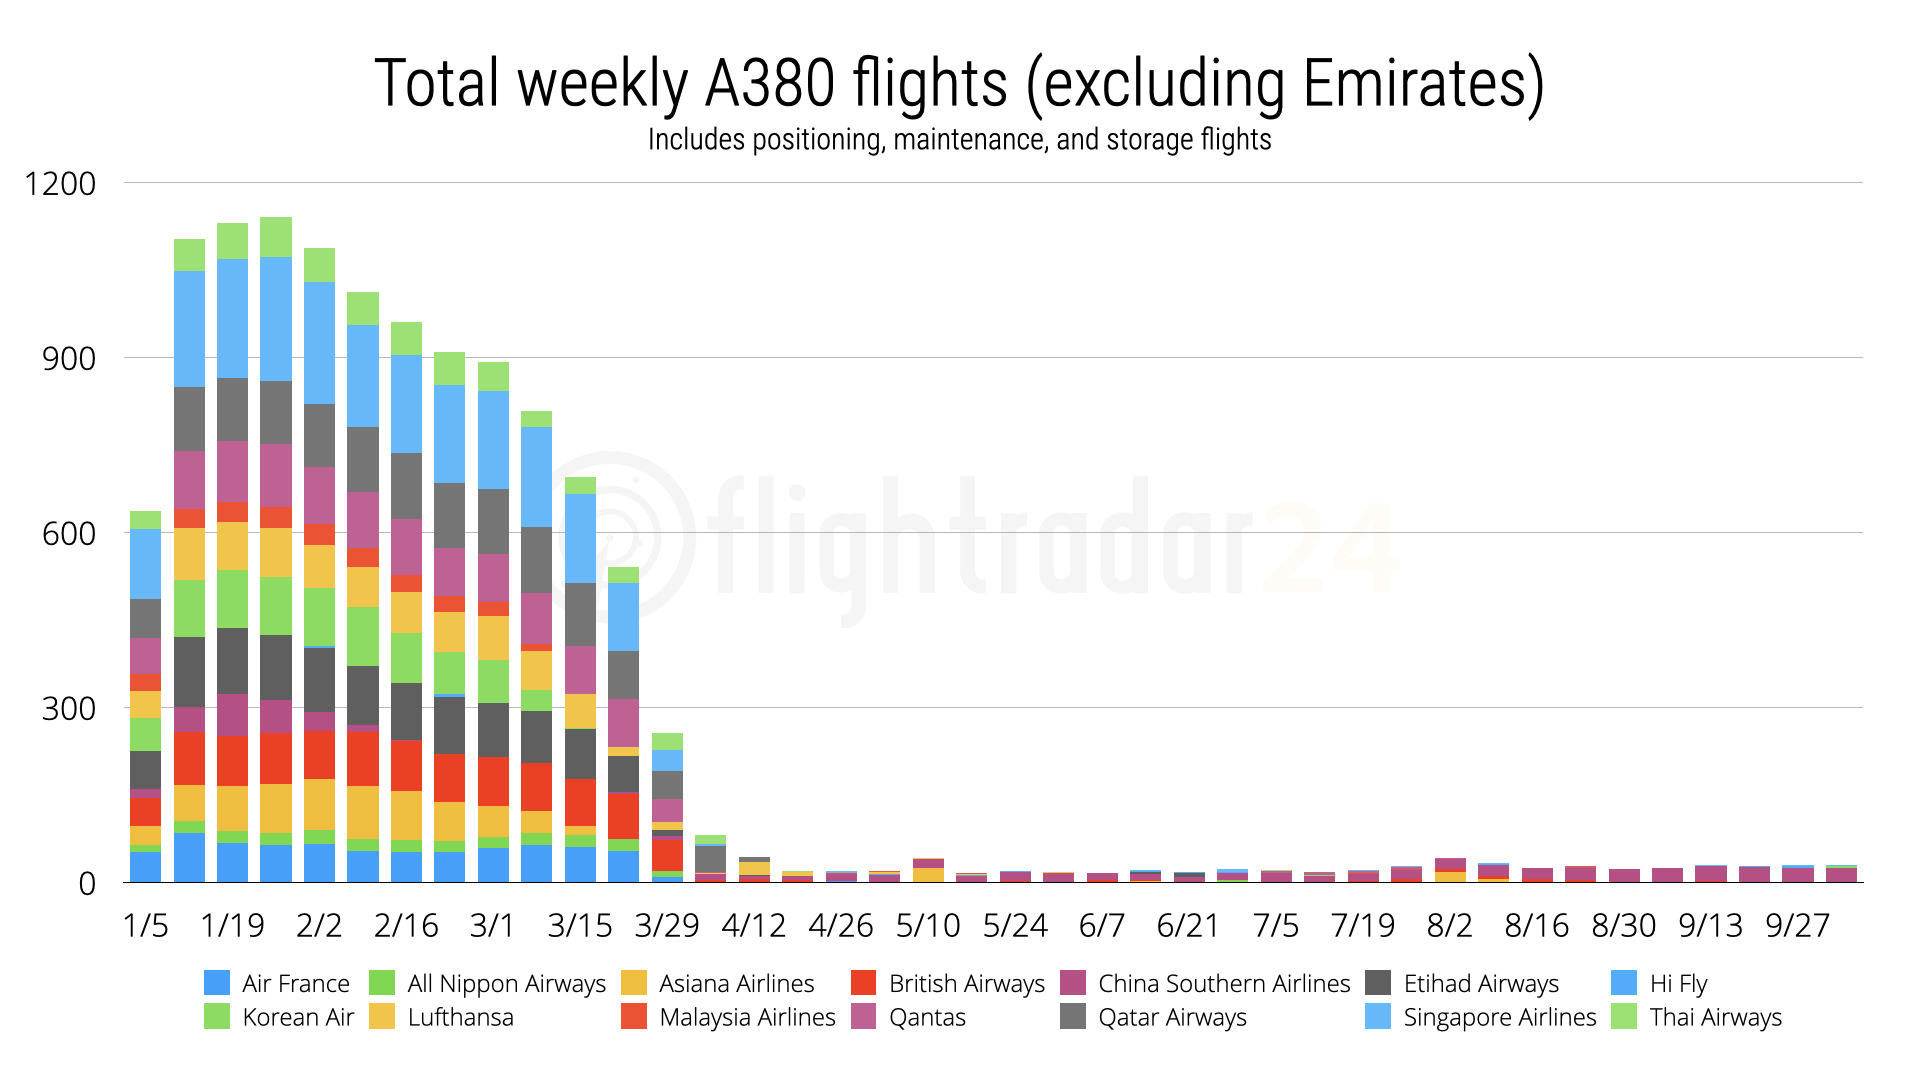 Weekly A380 flights excluding Emirates